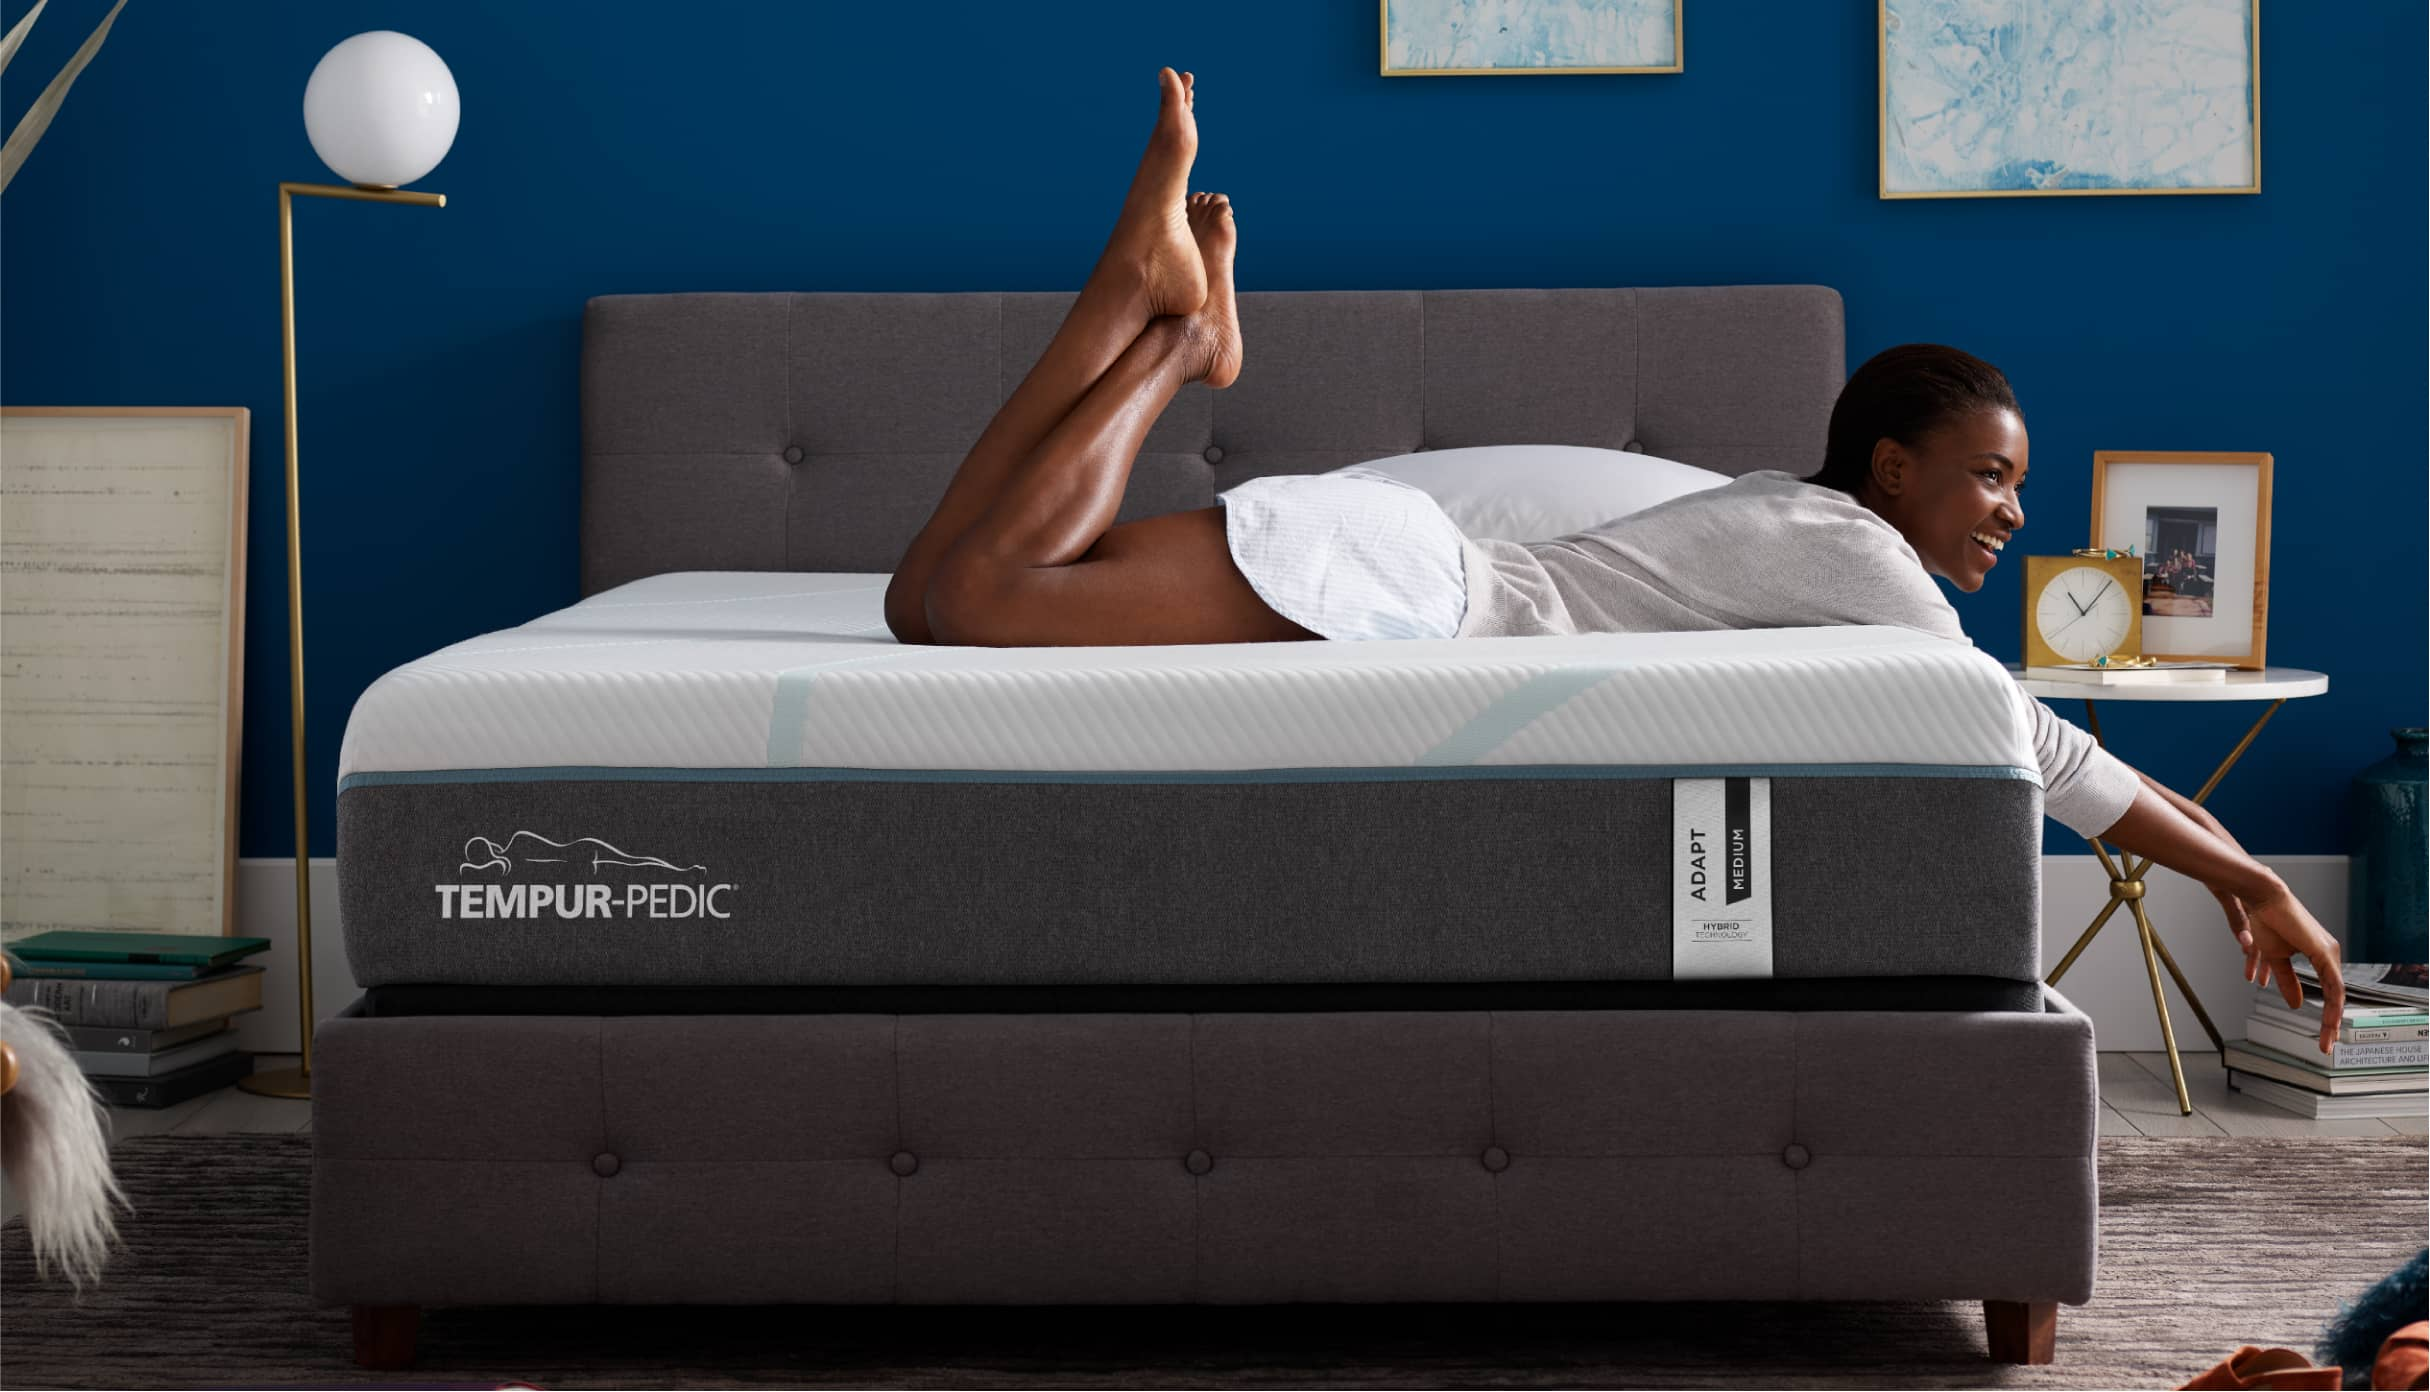 Bedroom Mattress Tempur Pedic Ashley Homestore